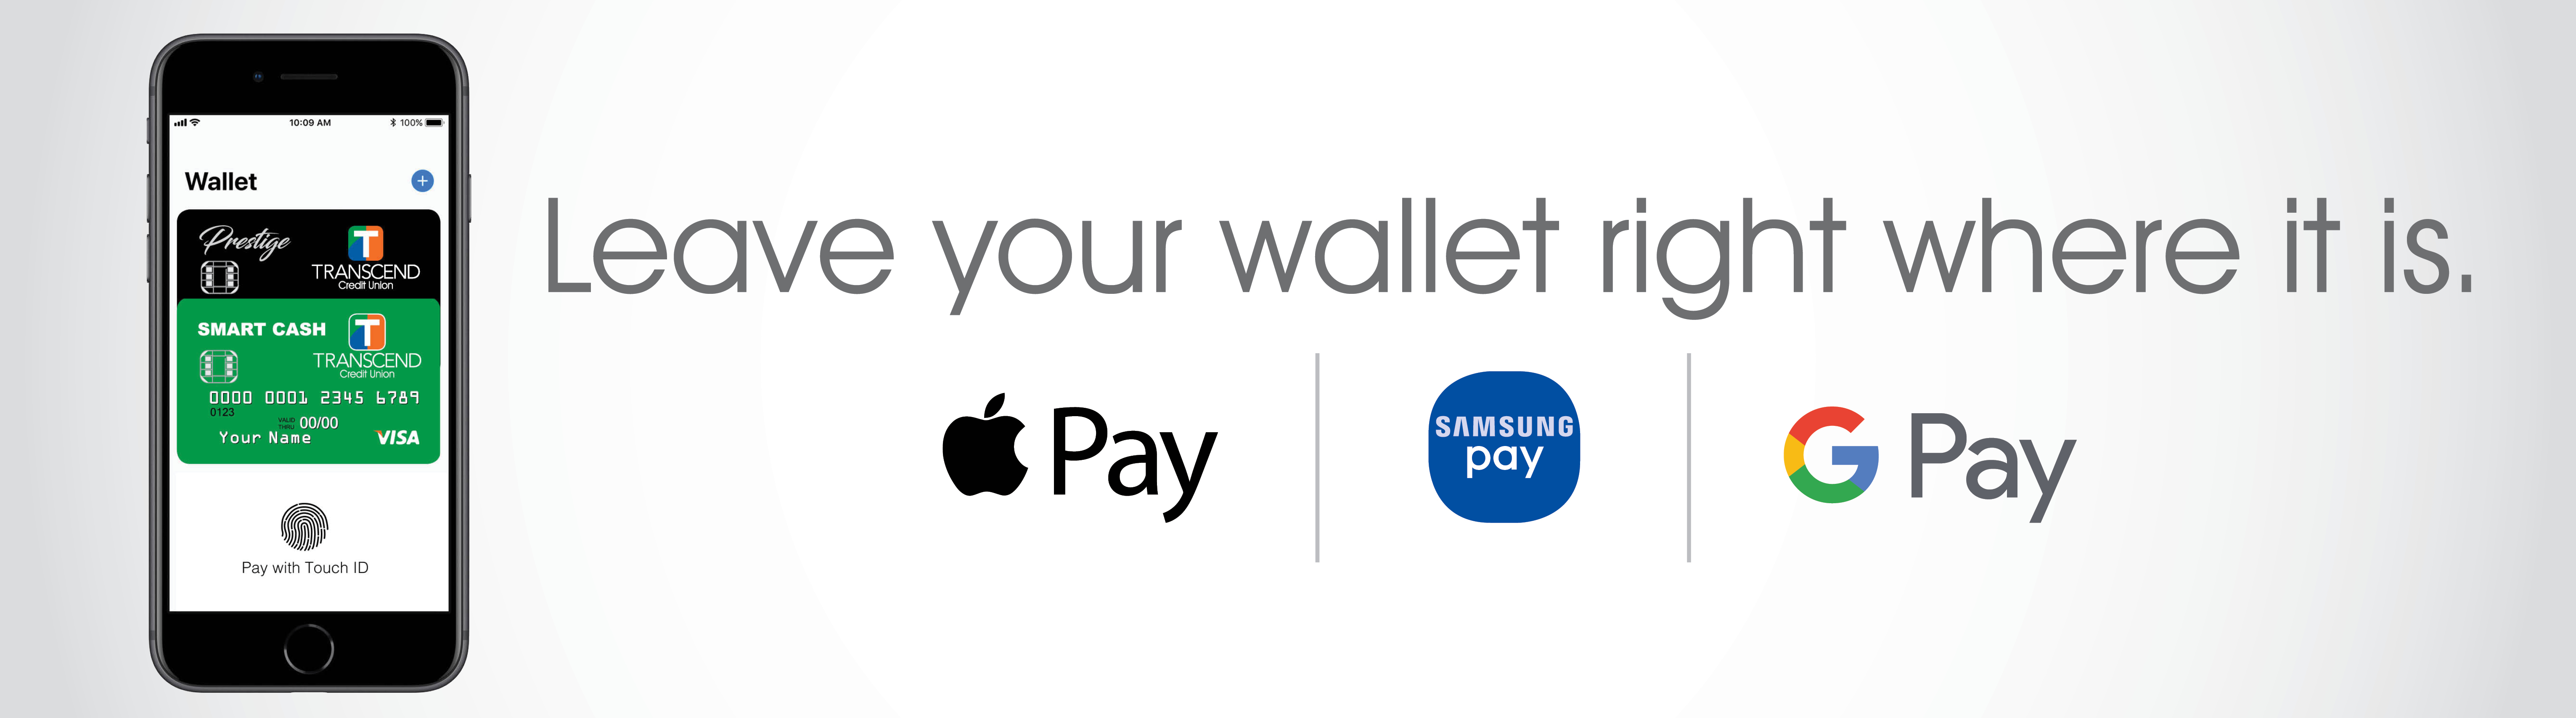 Leave your wallet right where it is. We now have Apple Pay, Samsung Pay, and Google Pay.